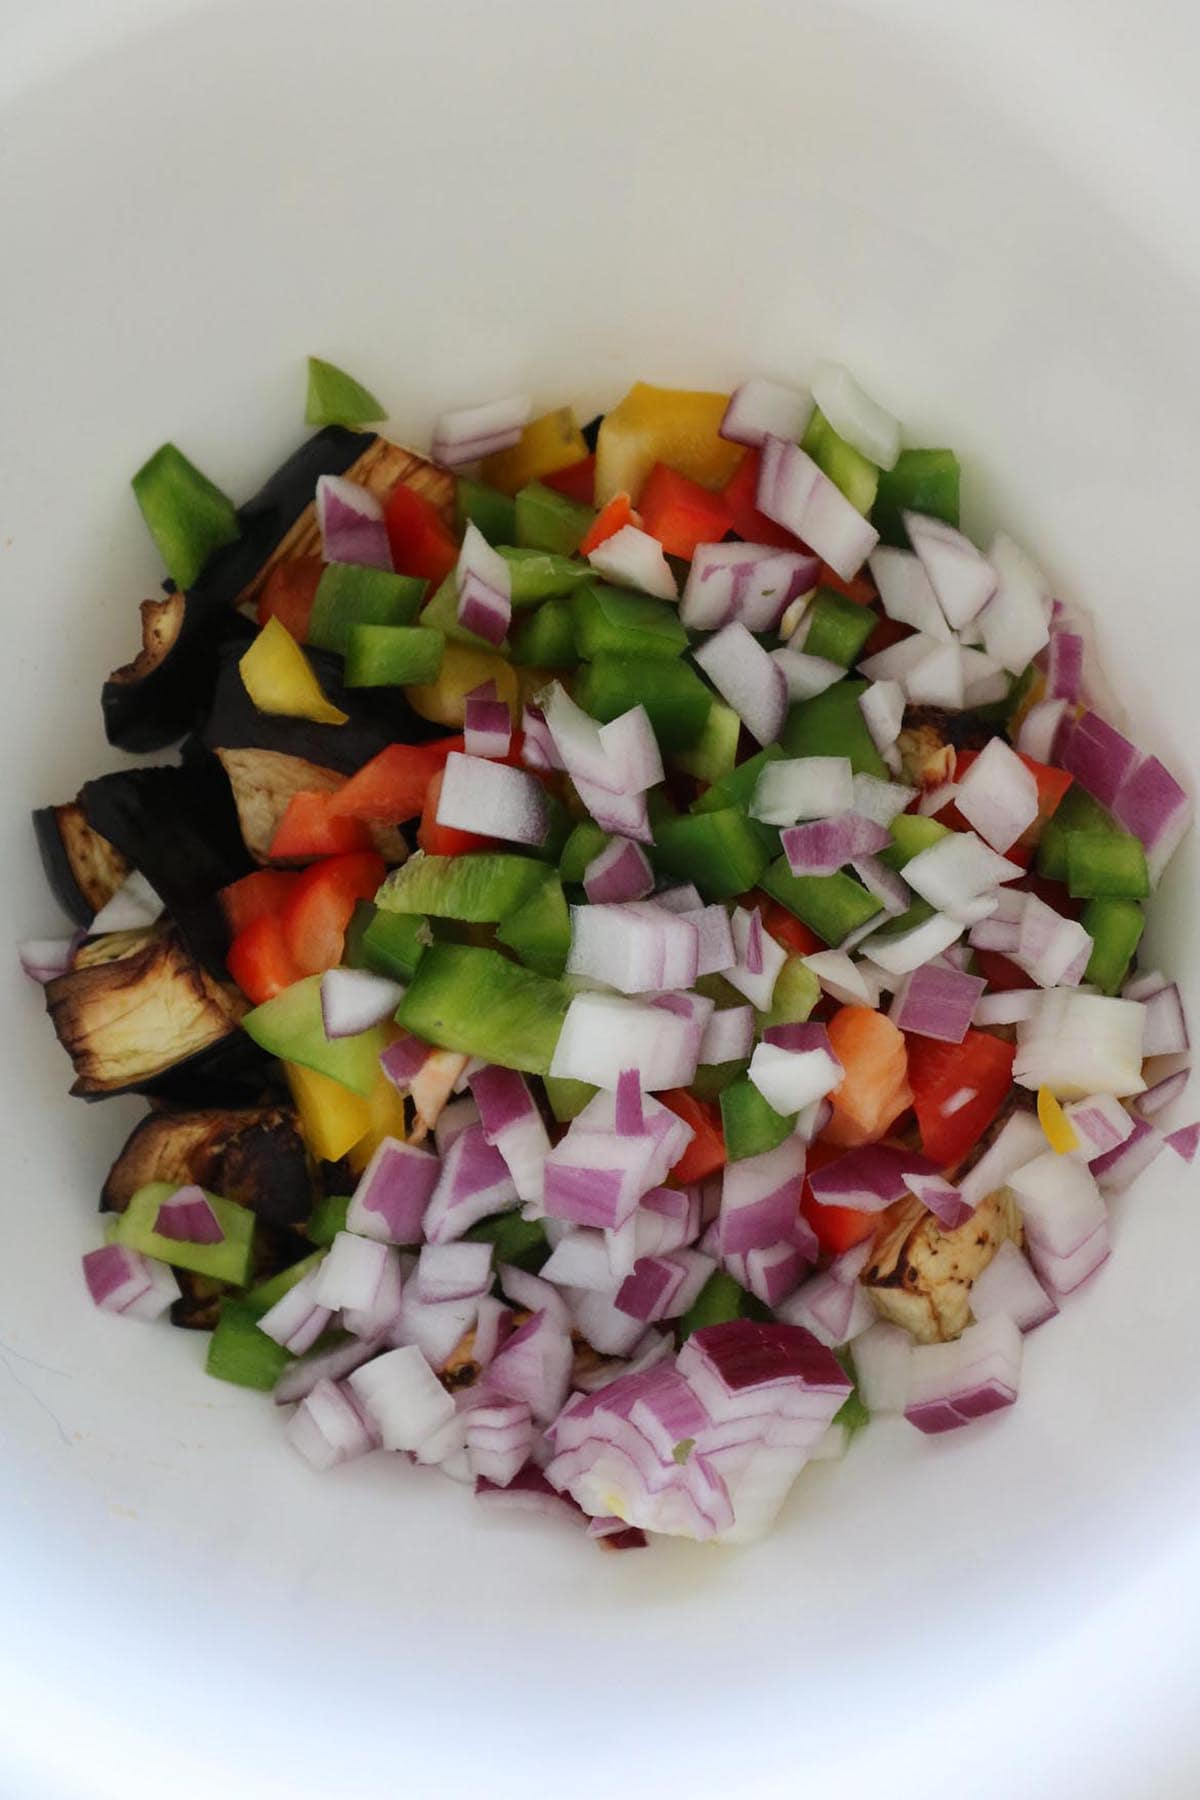 fried eggplant salad ingredients added to a bowl